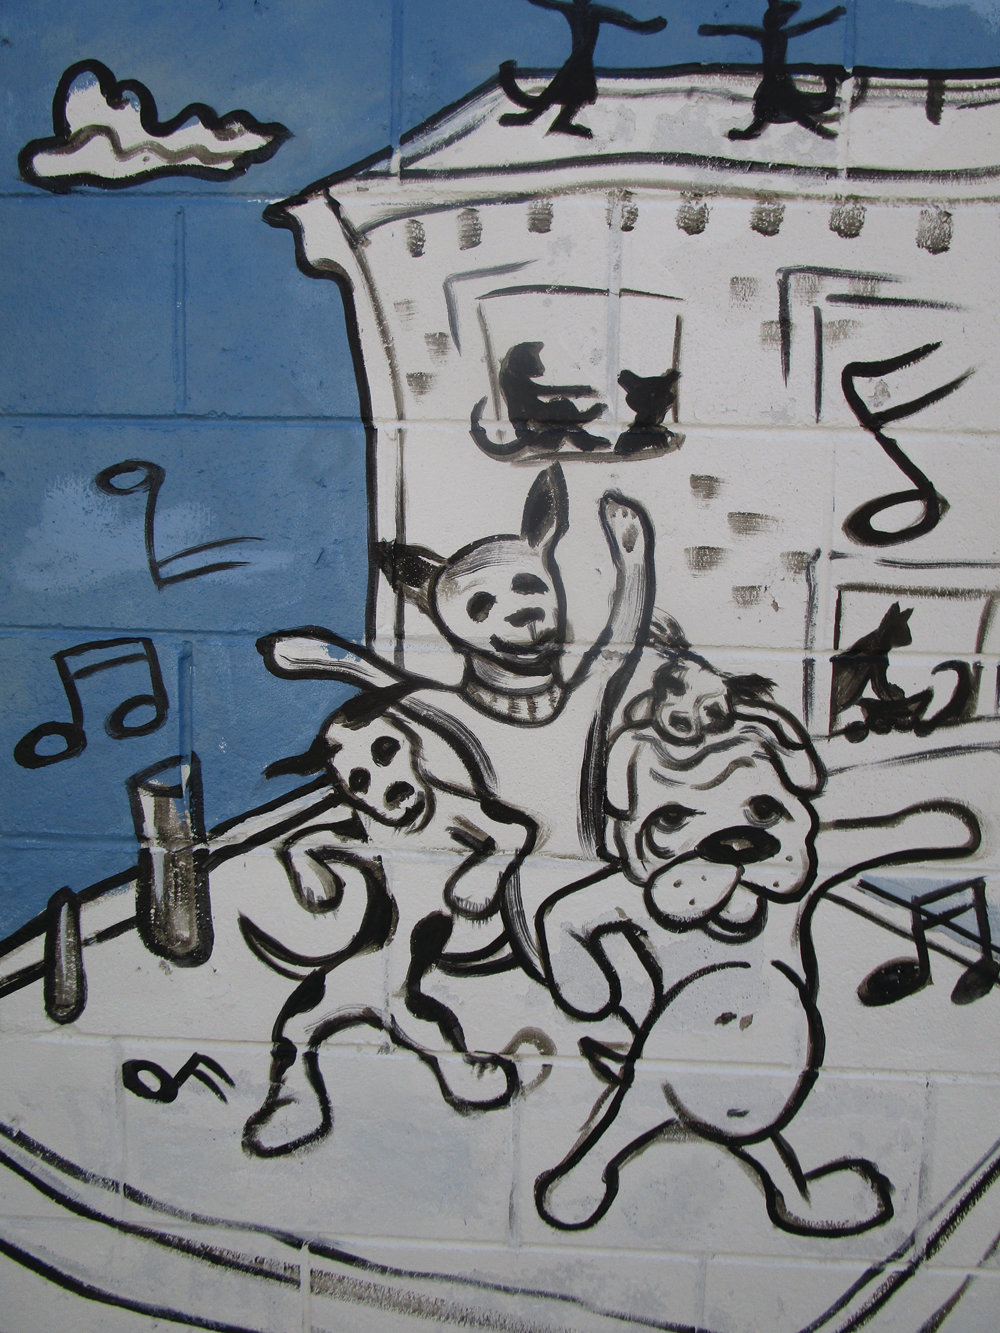 MOVING AND SHAKING: Cartoon dogs groove to the music in this scene from Rob Ratigan's mural.